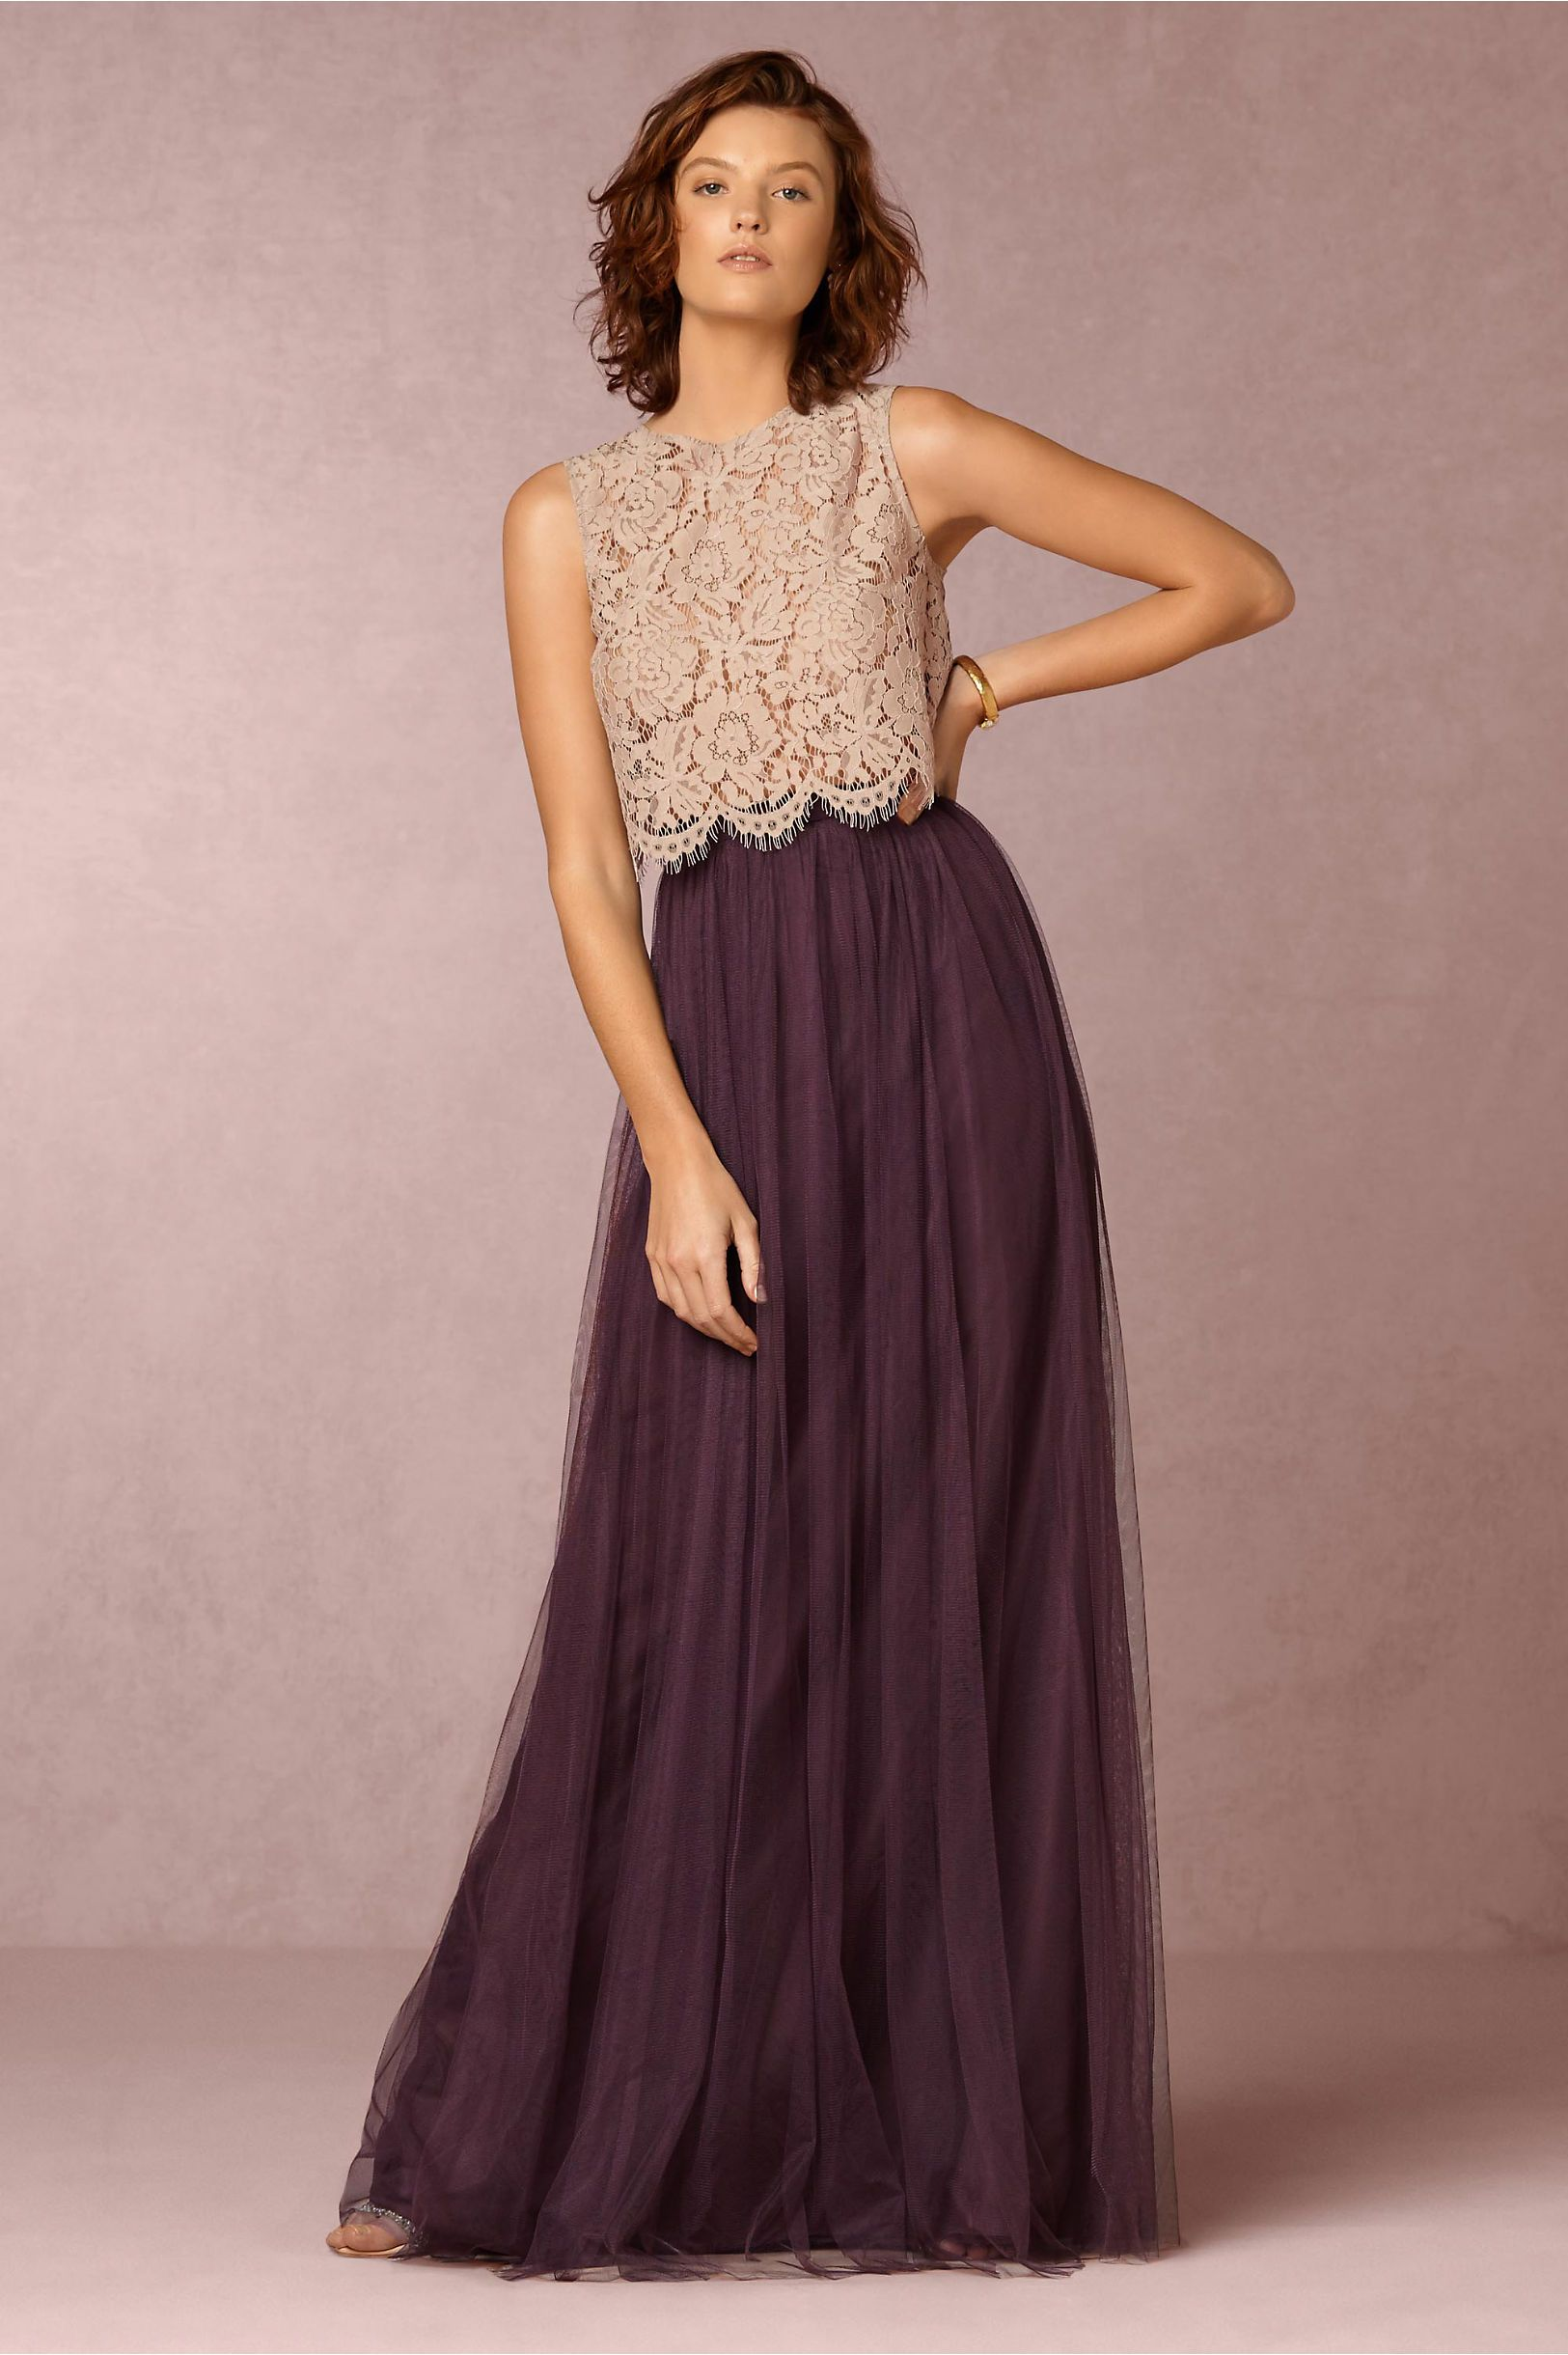 d0fe25ff2a9 BHLDN Louise Tulle Skirt in Bridesmaids Bridesmaid Separates at BHLDN